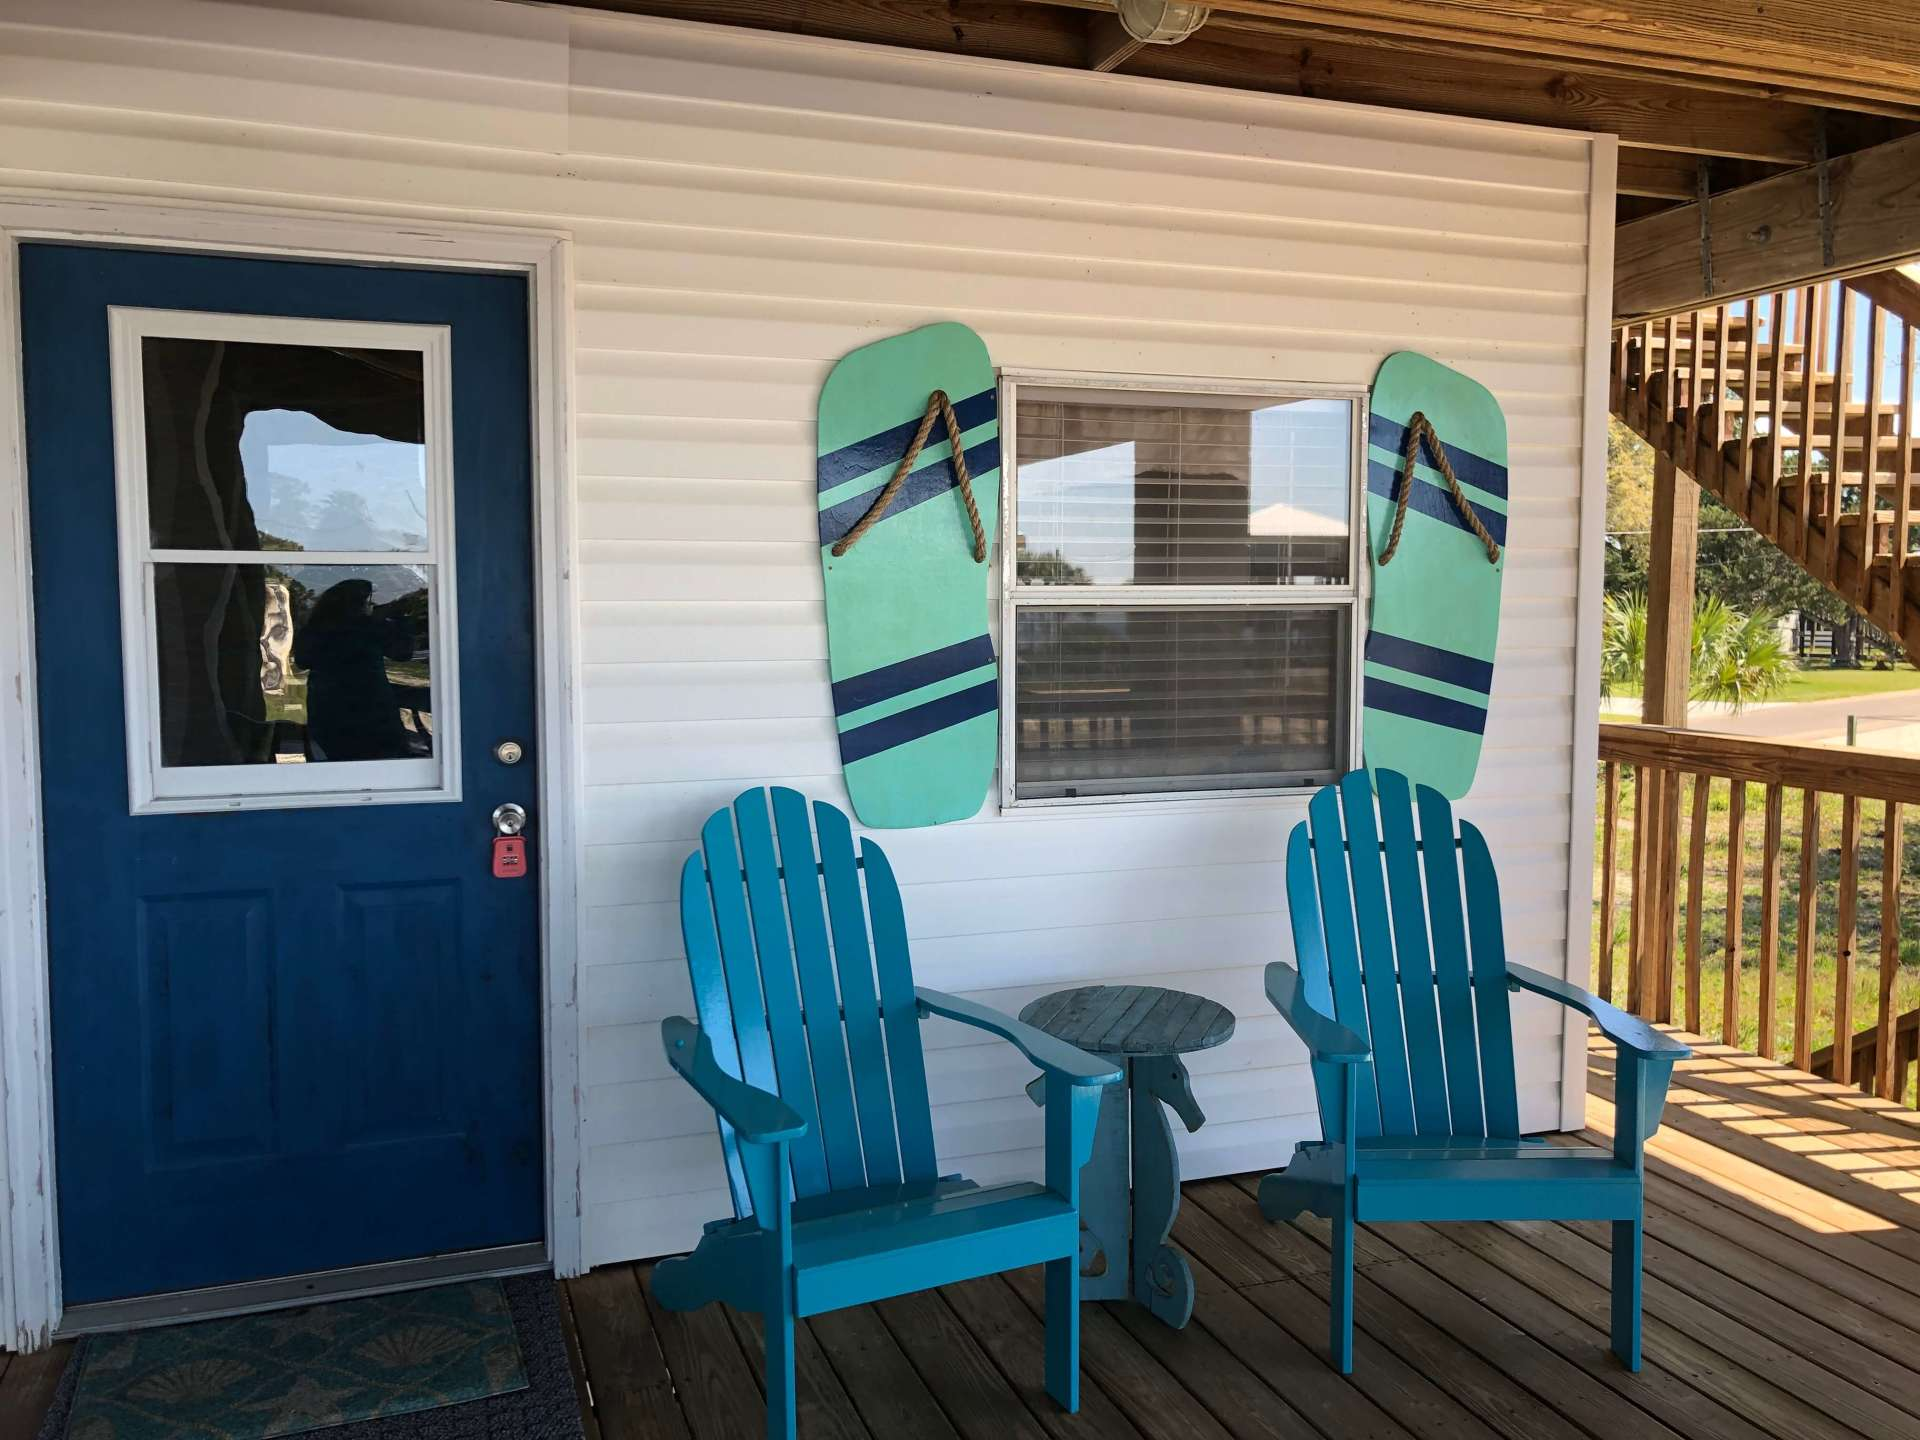 Outside Seating Margaritaville Efficiency Available for Additional Charge When Renting Main Home